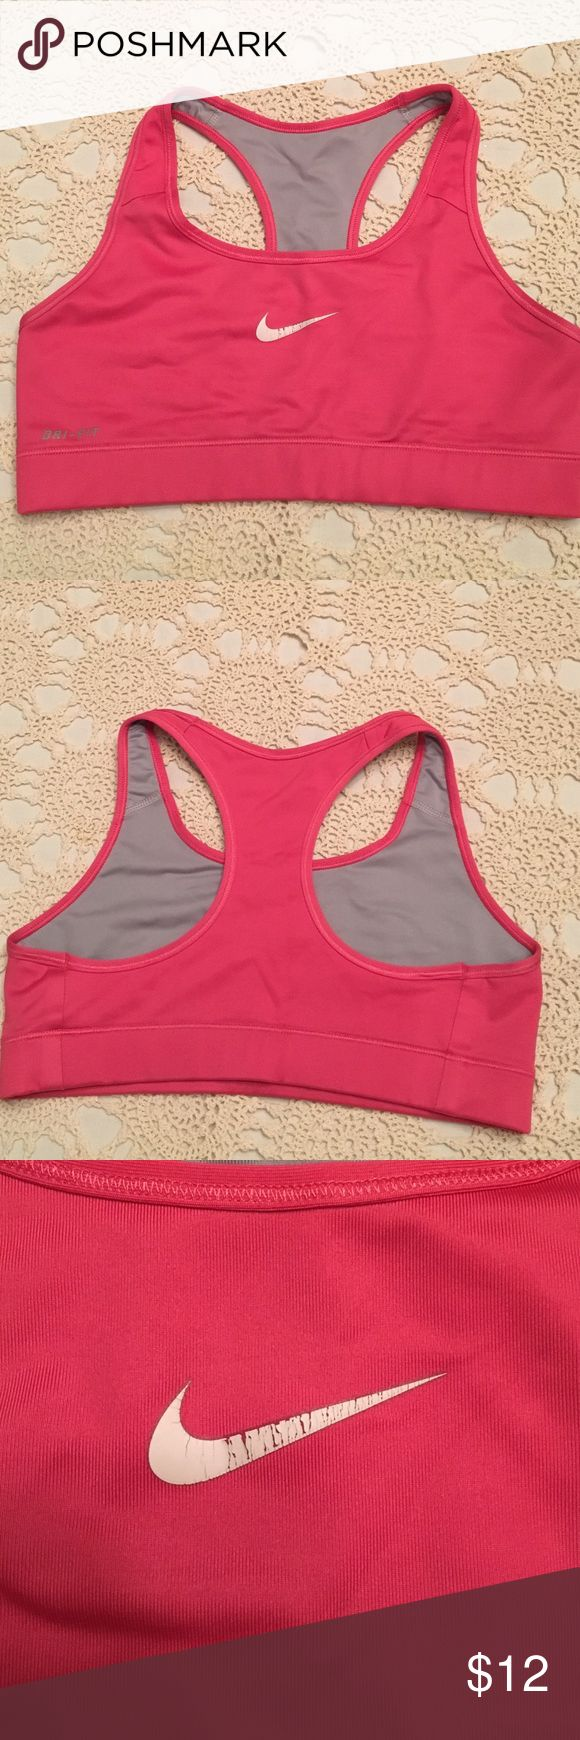 Pink Nike Dri-Fit bra In good condition, Nike bra. Size small. Pink. Nike Other